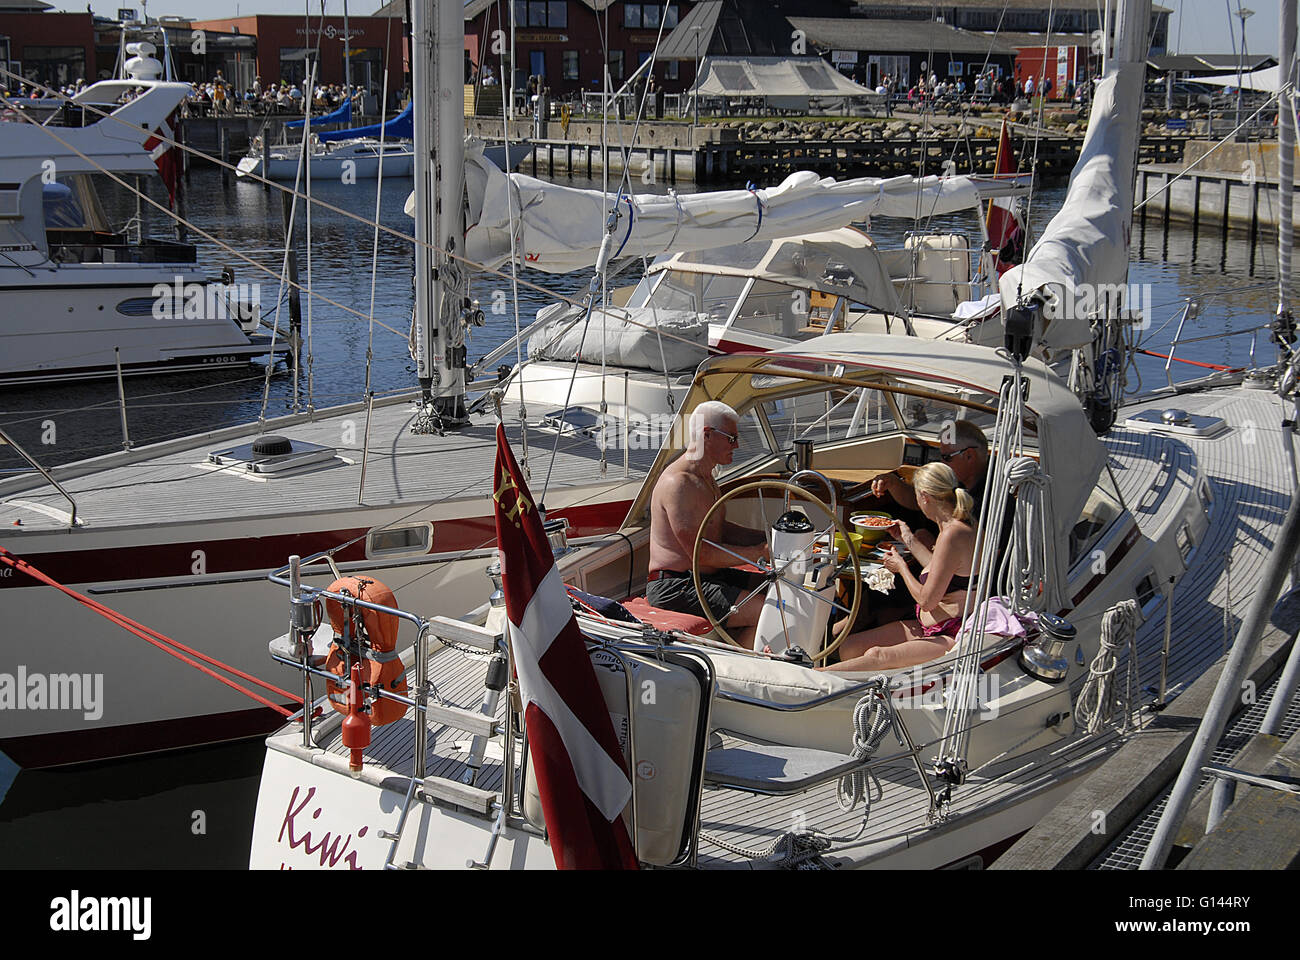 Hundested, Denmark. 8th May, 2016. Danes enjoying hot mother day sunday at Hundested habour Credit:  Francis Joseph - Stock Image